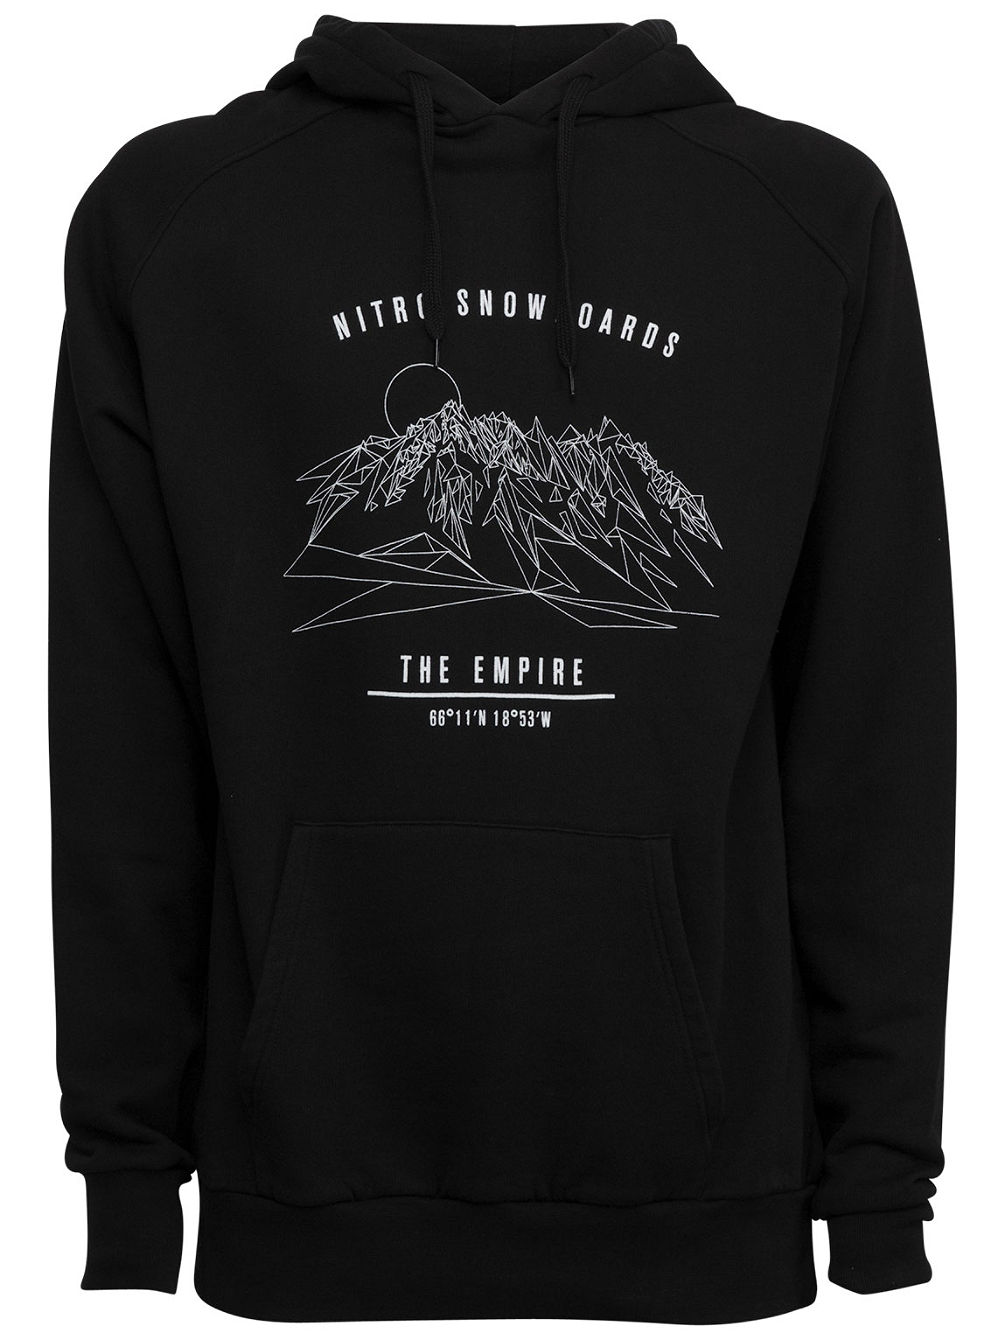 The Empire Hoodie